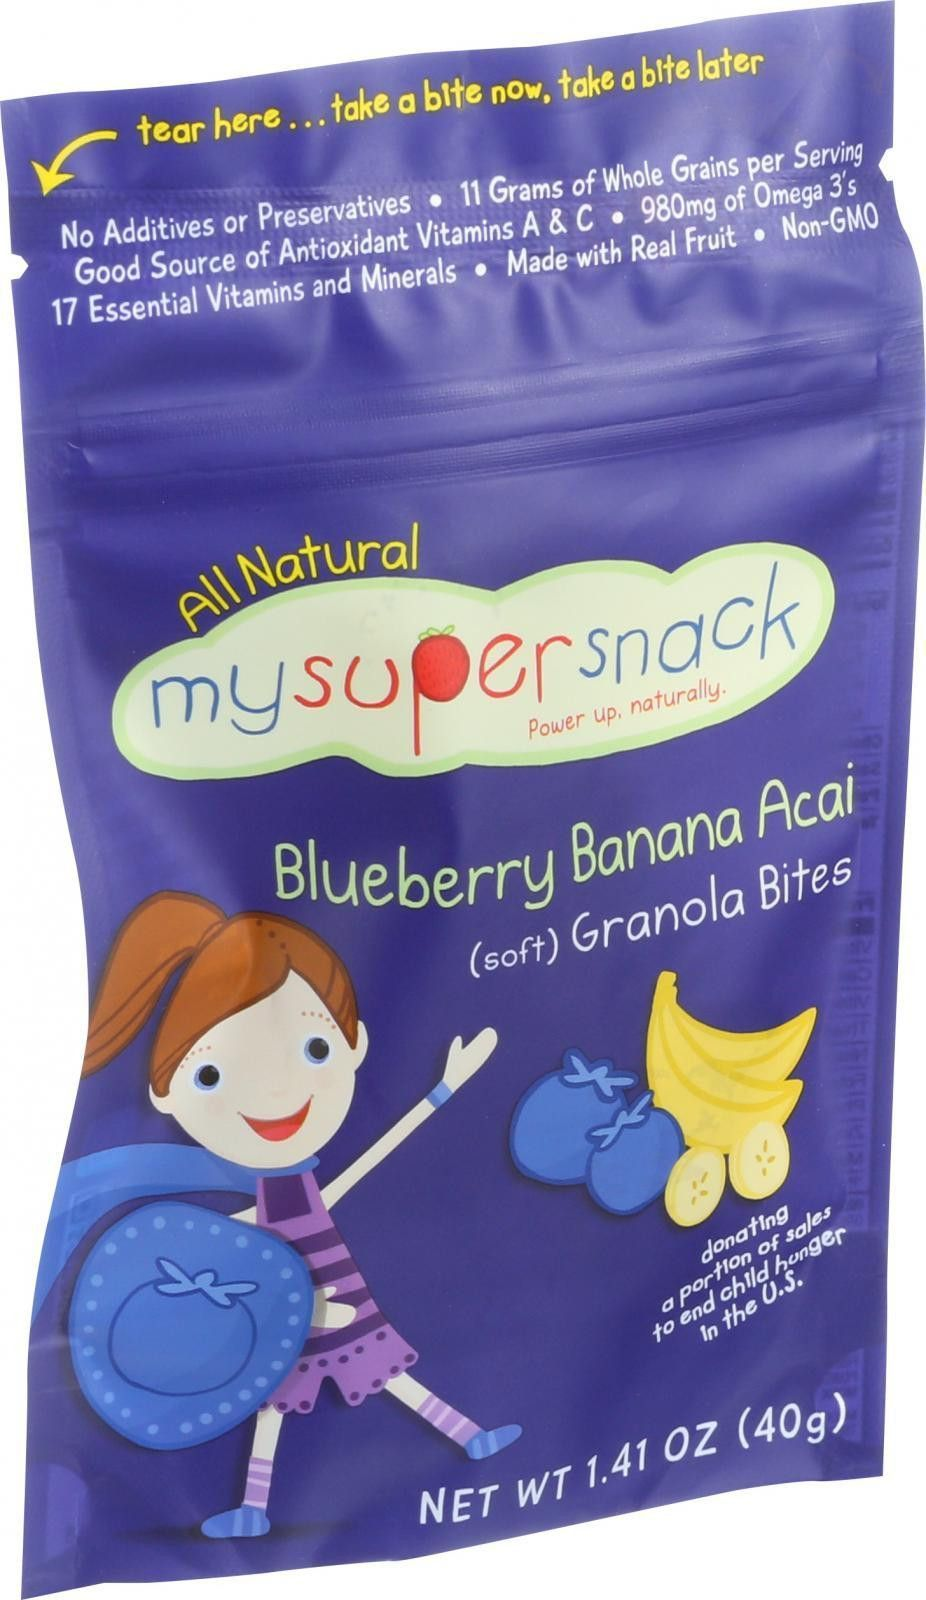 Mysupersnack Soft Granola Bites - Blueberry Banana Acai - 1.41 Oz - Case Of 6